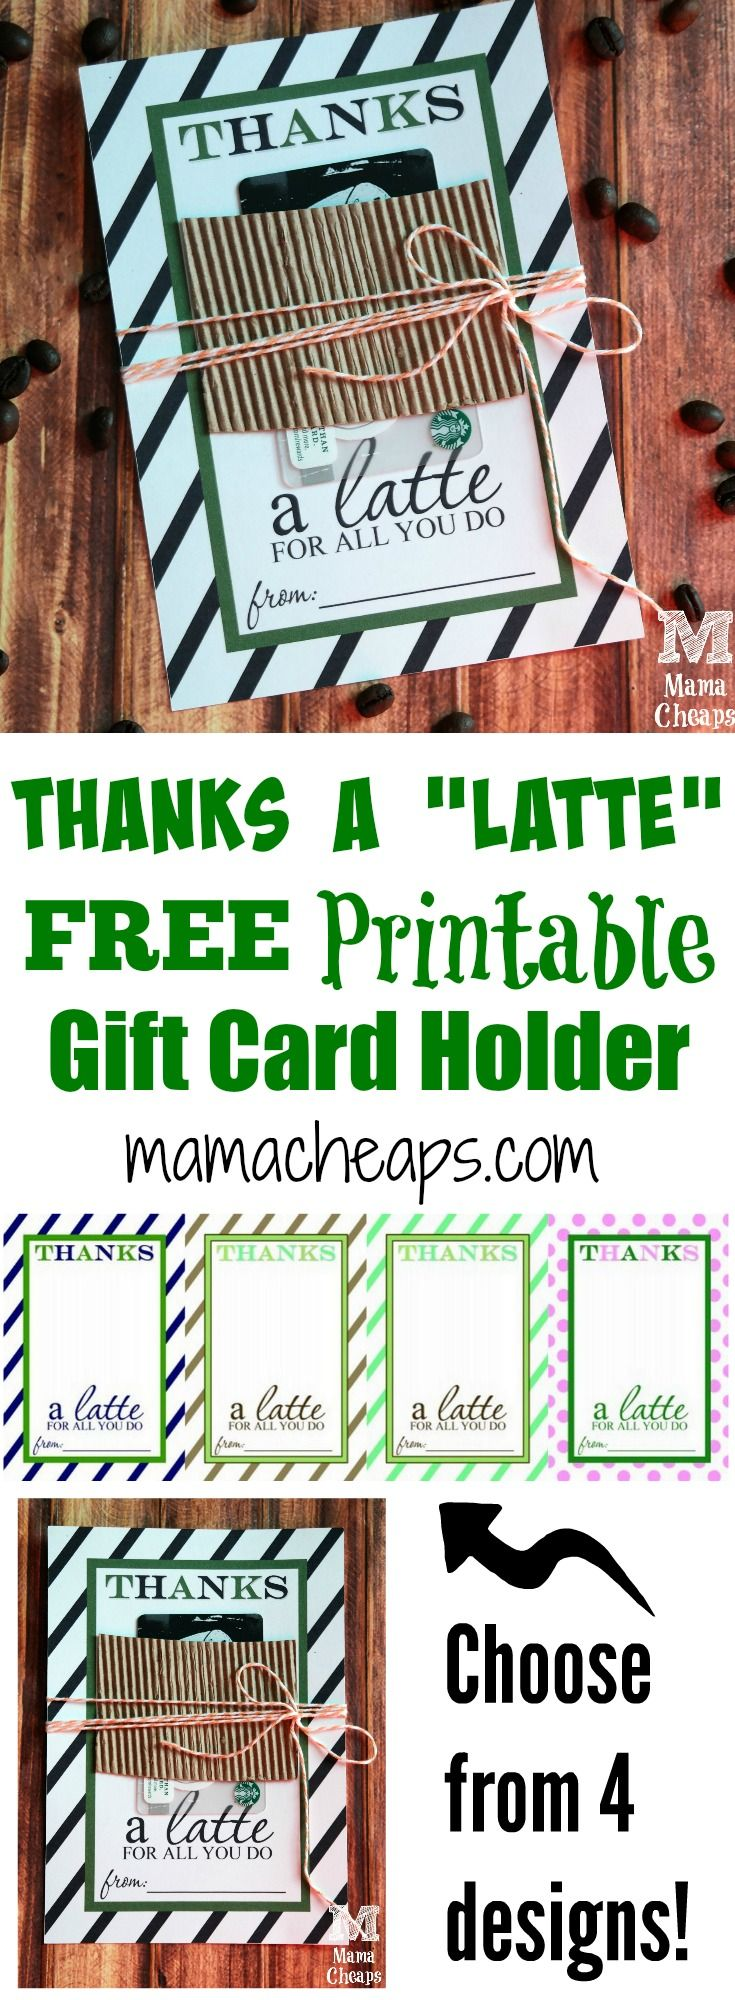 Thanks a Latte Gift Card Holder Free Printables